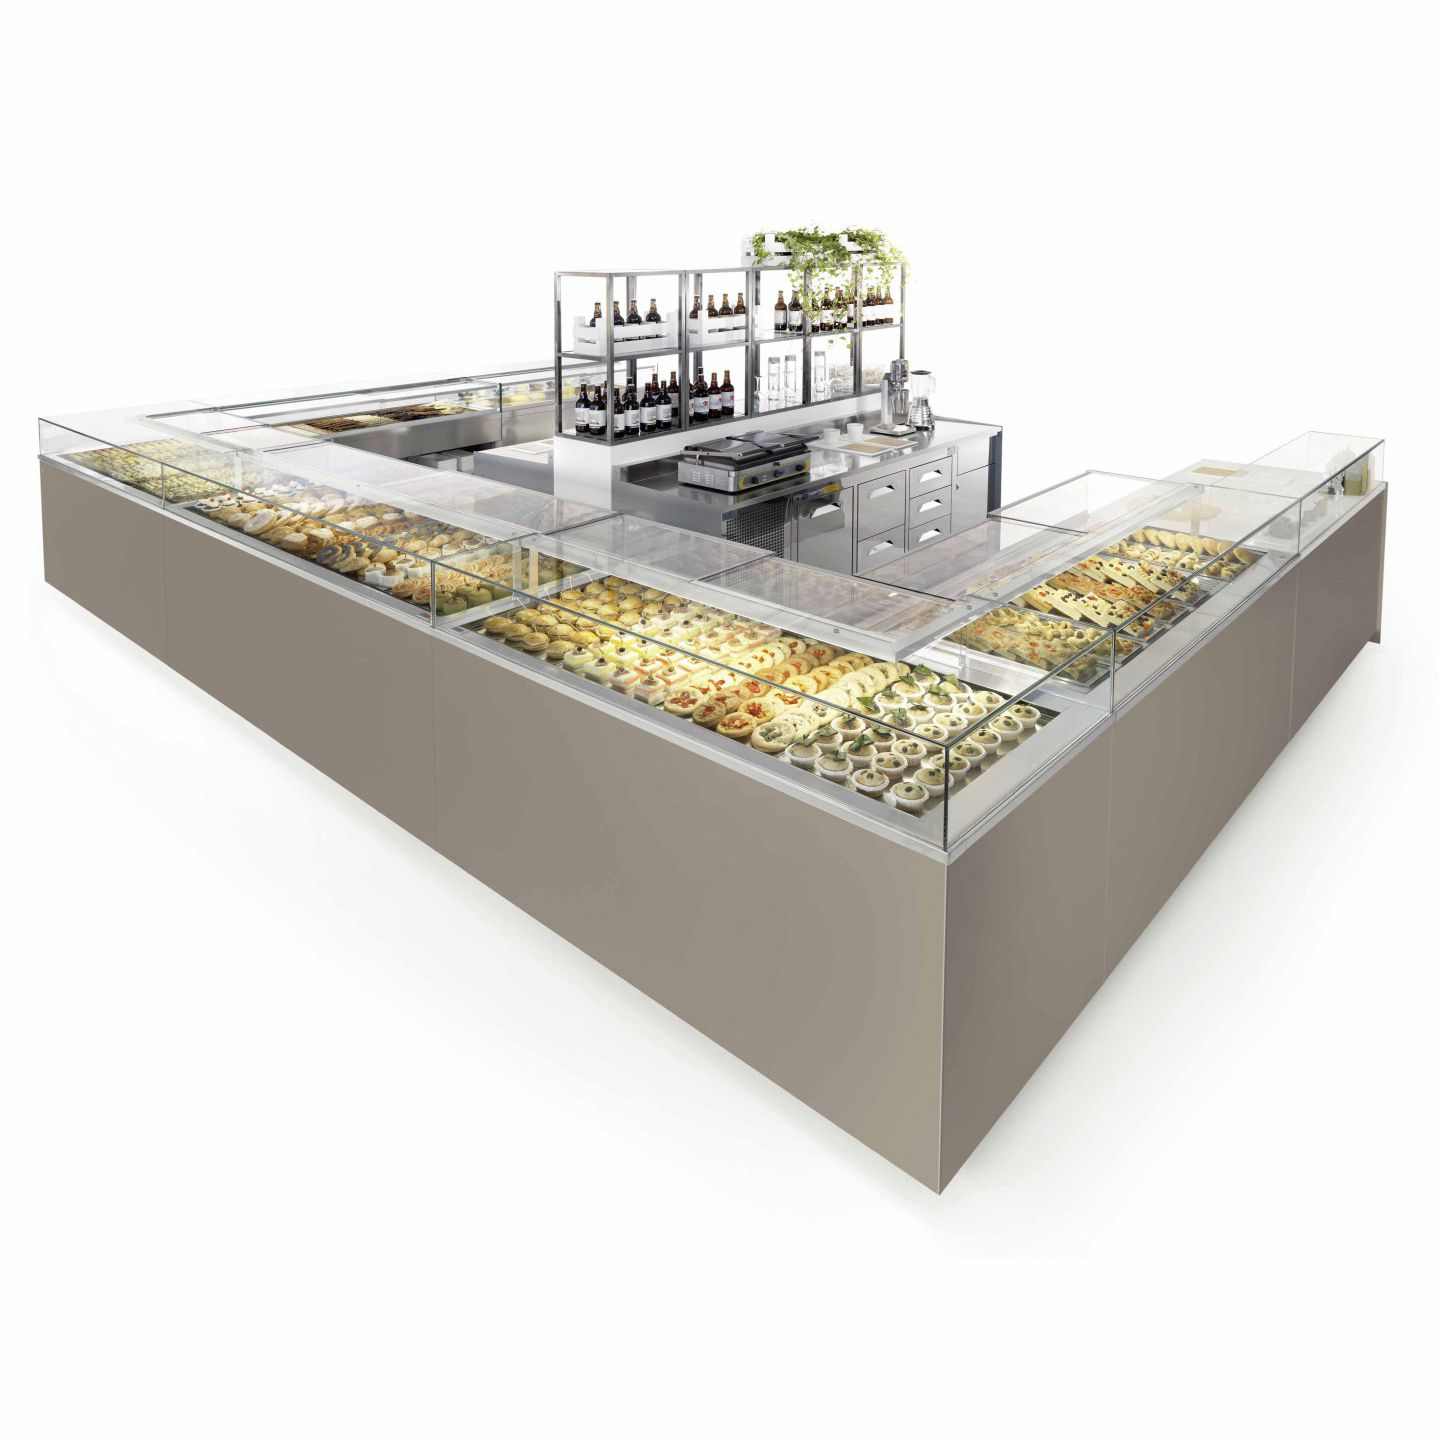 Refrigerated Display Counter Illuminated For Pastry Shops  Drop In